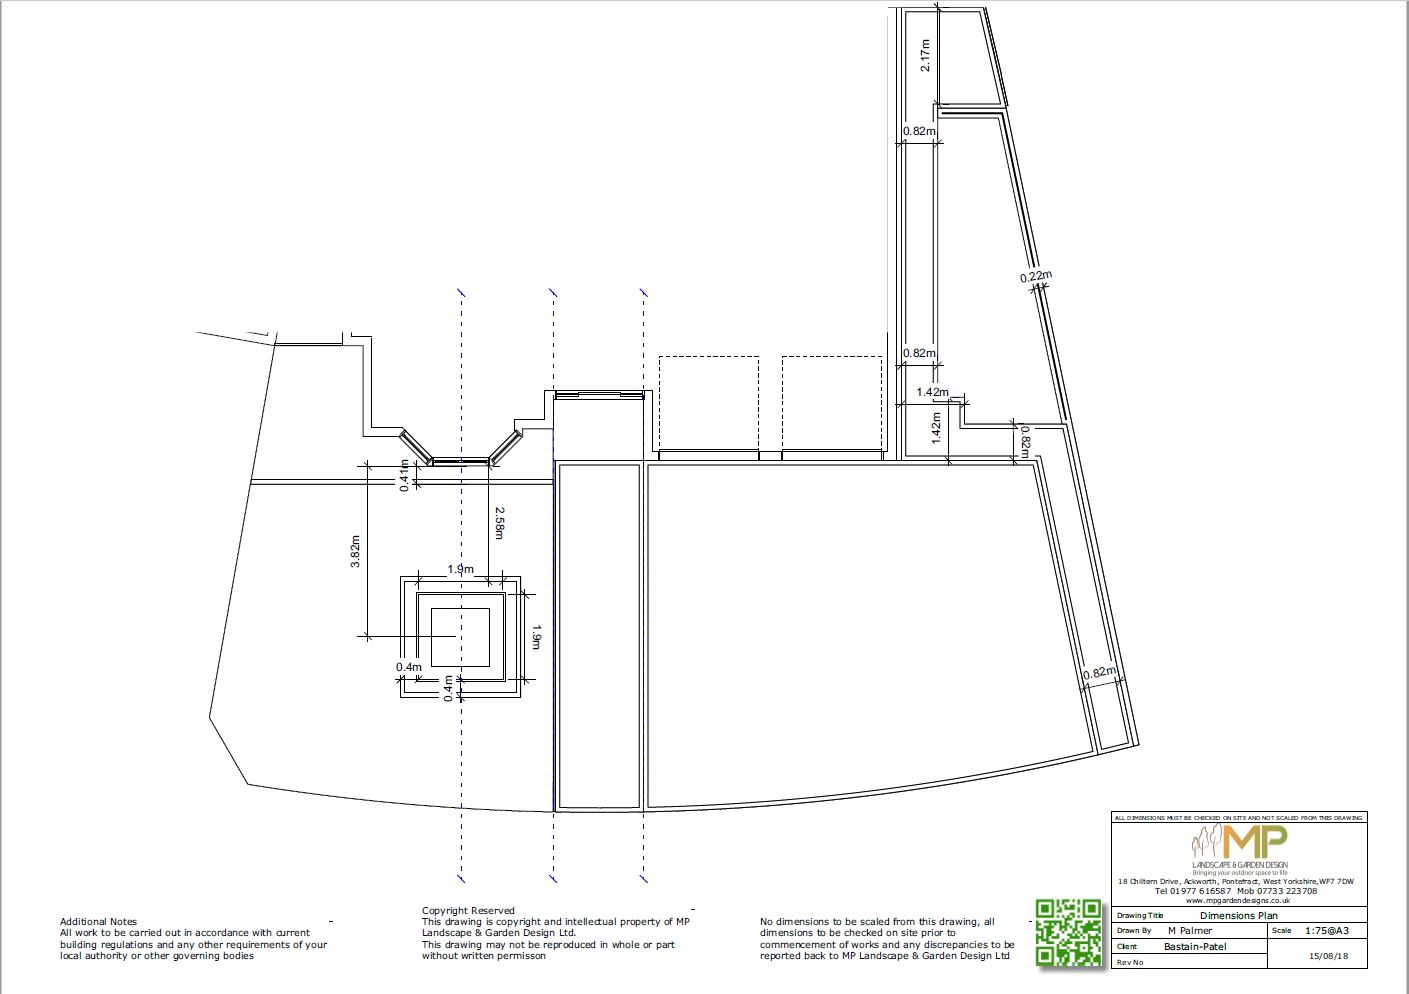 layout dimensions plans for a property in Ackworth, Pontefract.